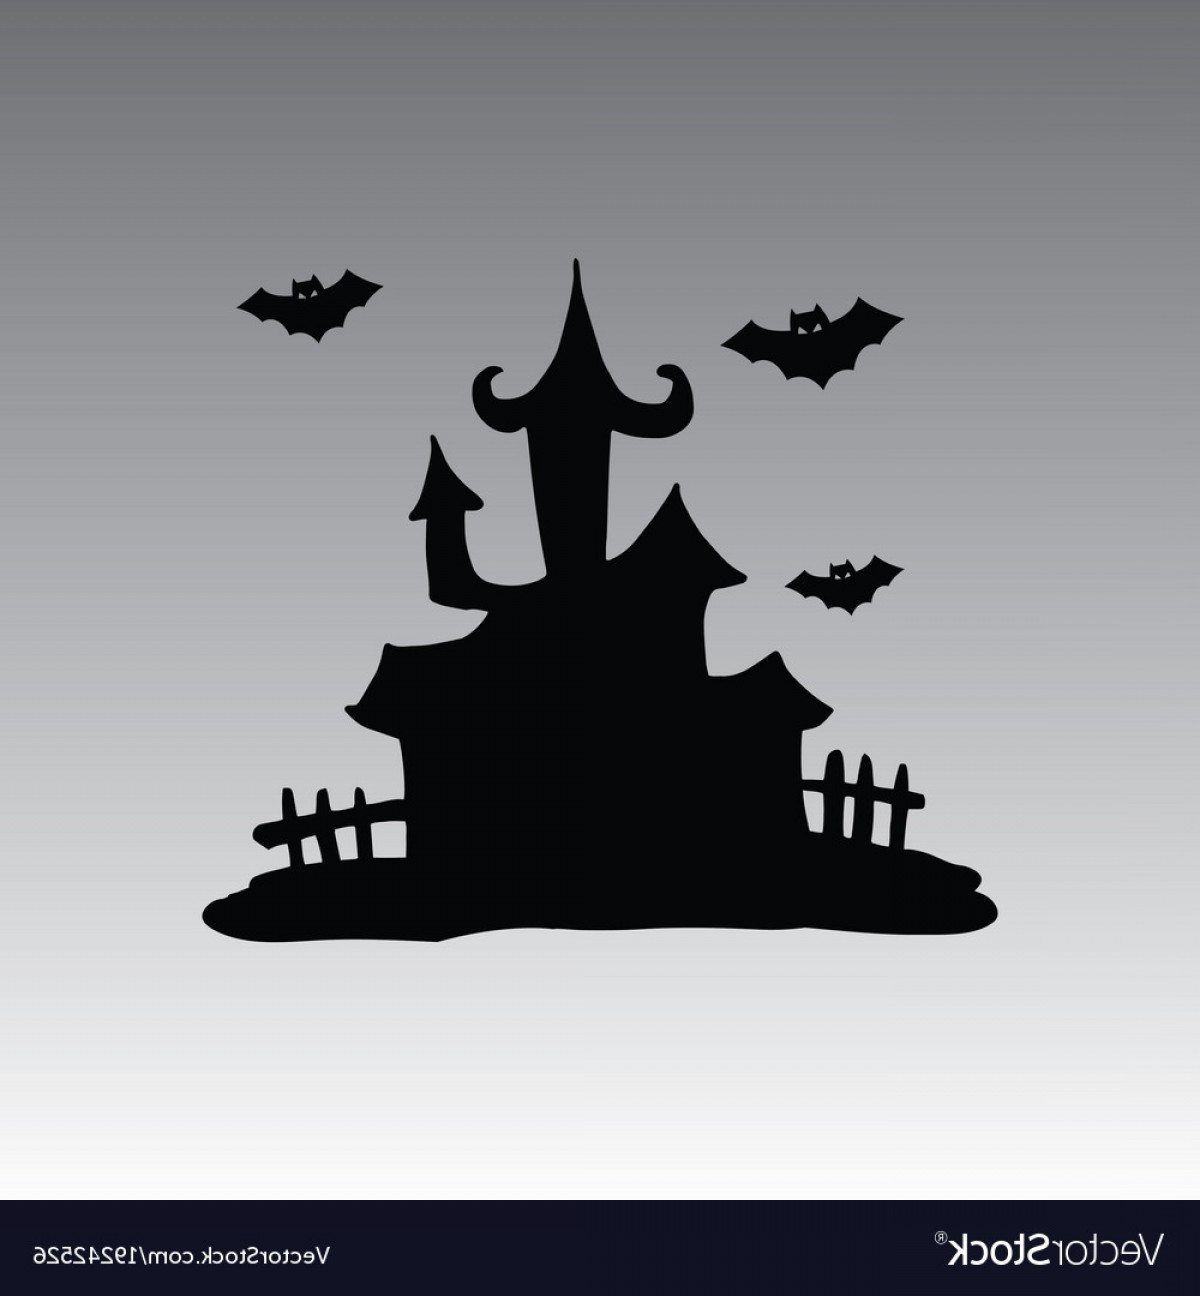 House Clip Art Vector: House Hallowen Clip Art Vector